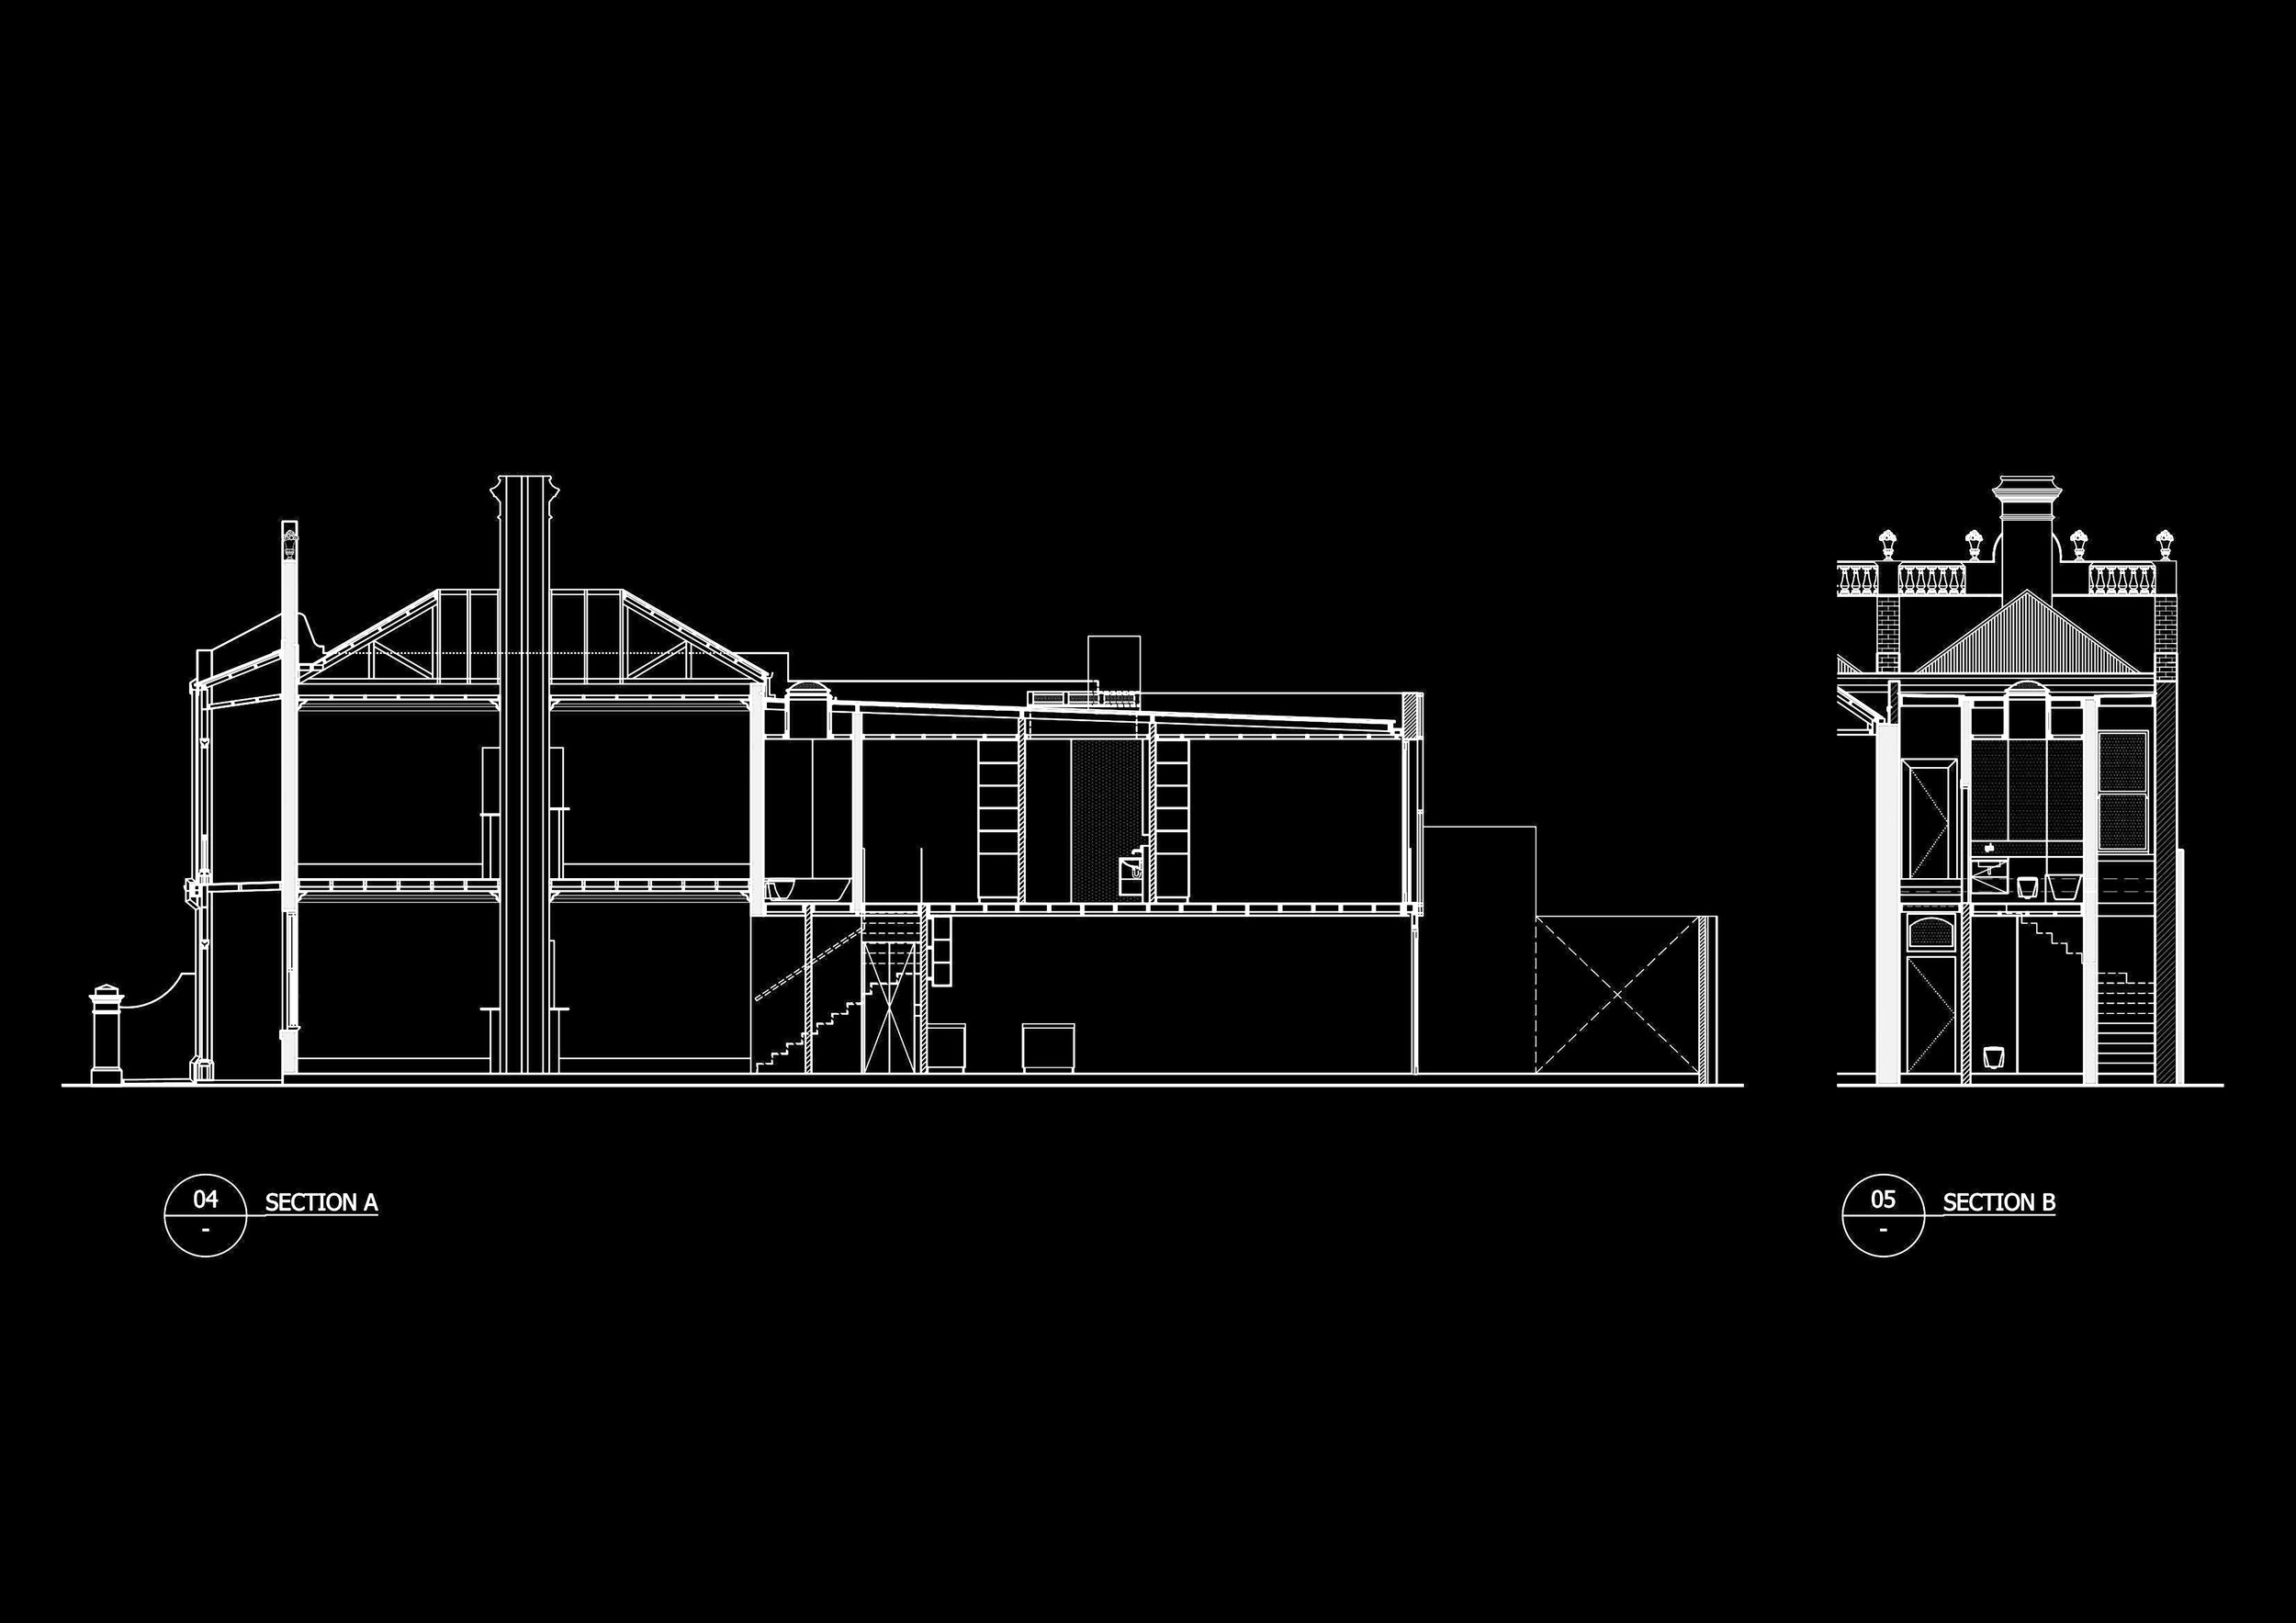 EXISTING CONDITION AND PROPOSED SECTION OF ALBERT PARK RESIDENCE IN MELBOURNE